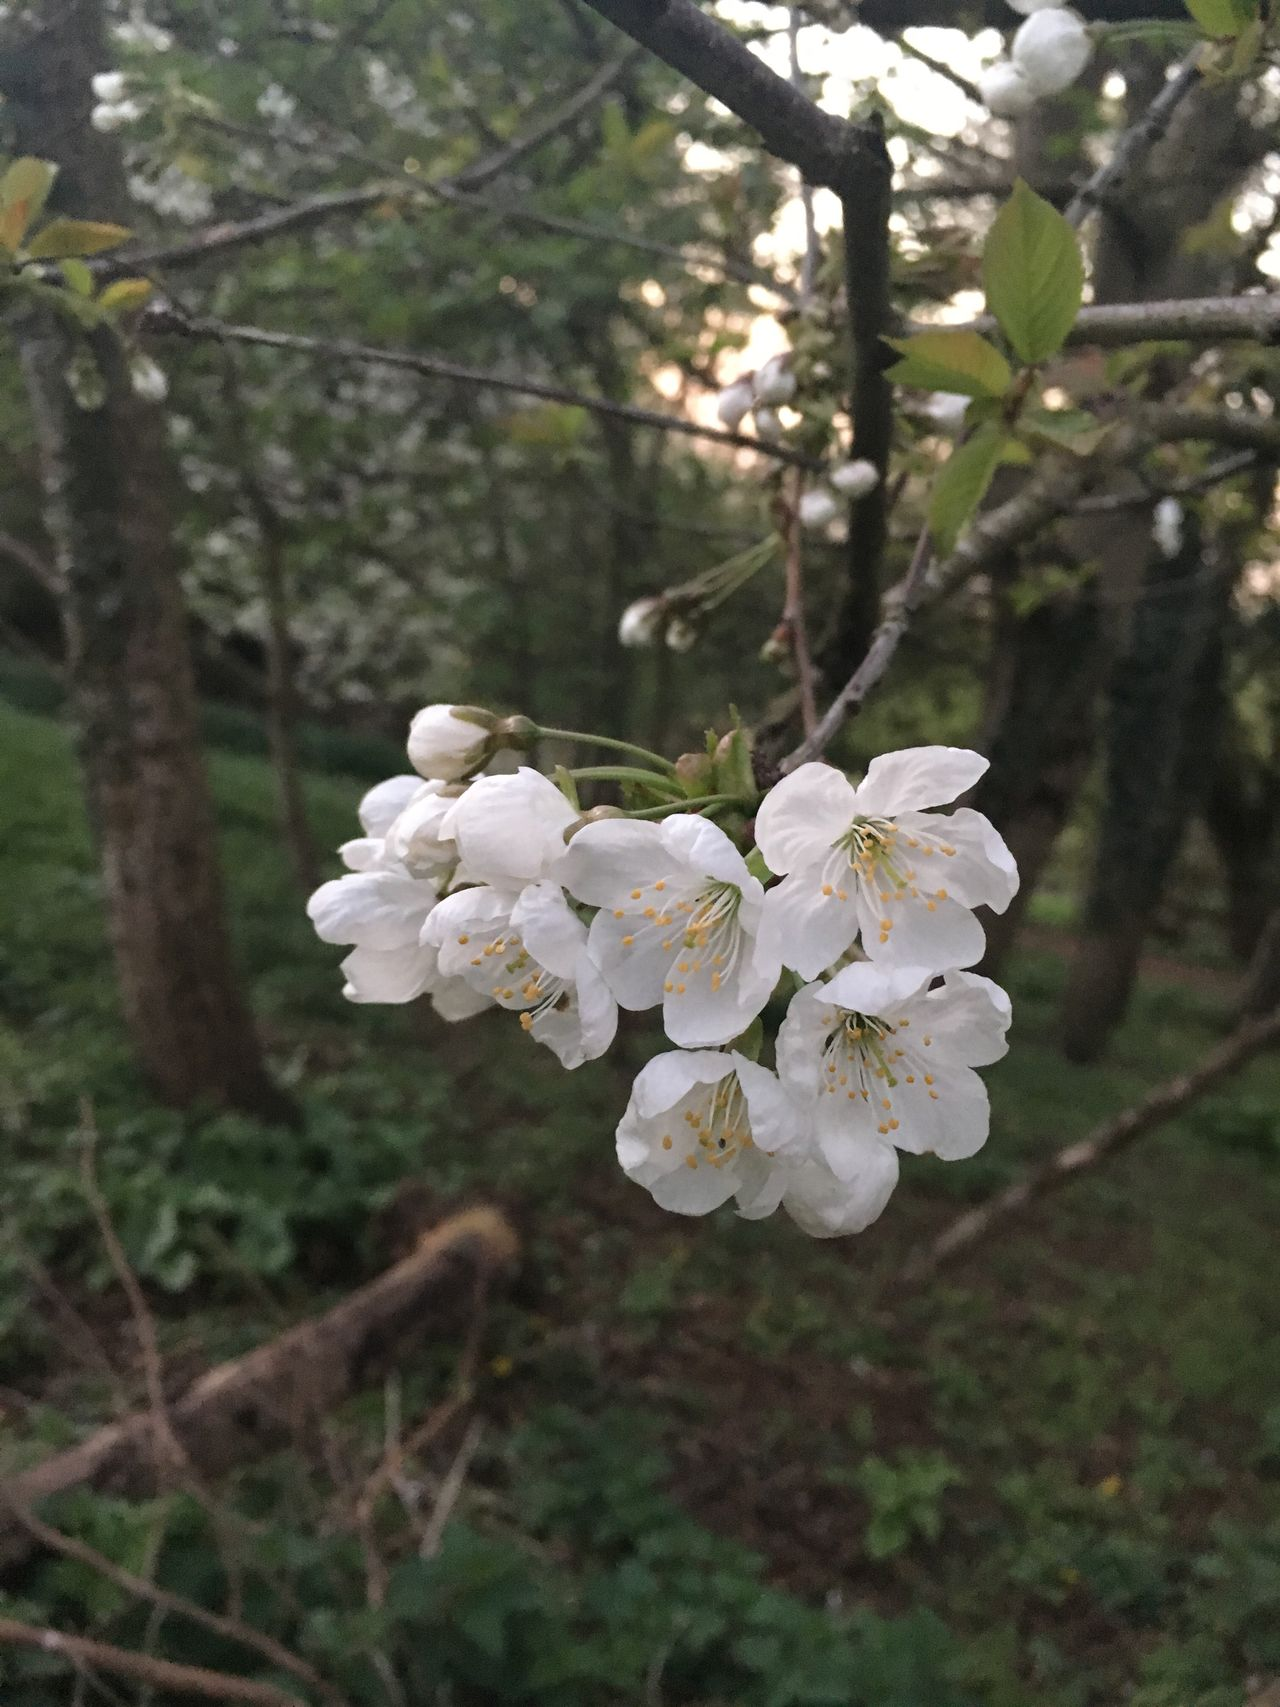 White Color Flower Growth Nature Tree Beauty In Nature Freshness Fragility Petal Close-up Blossom Springtime Branch Outdoors Day Flower Head